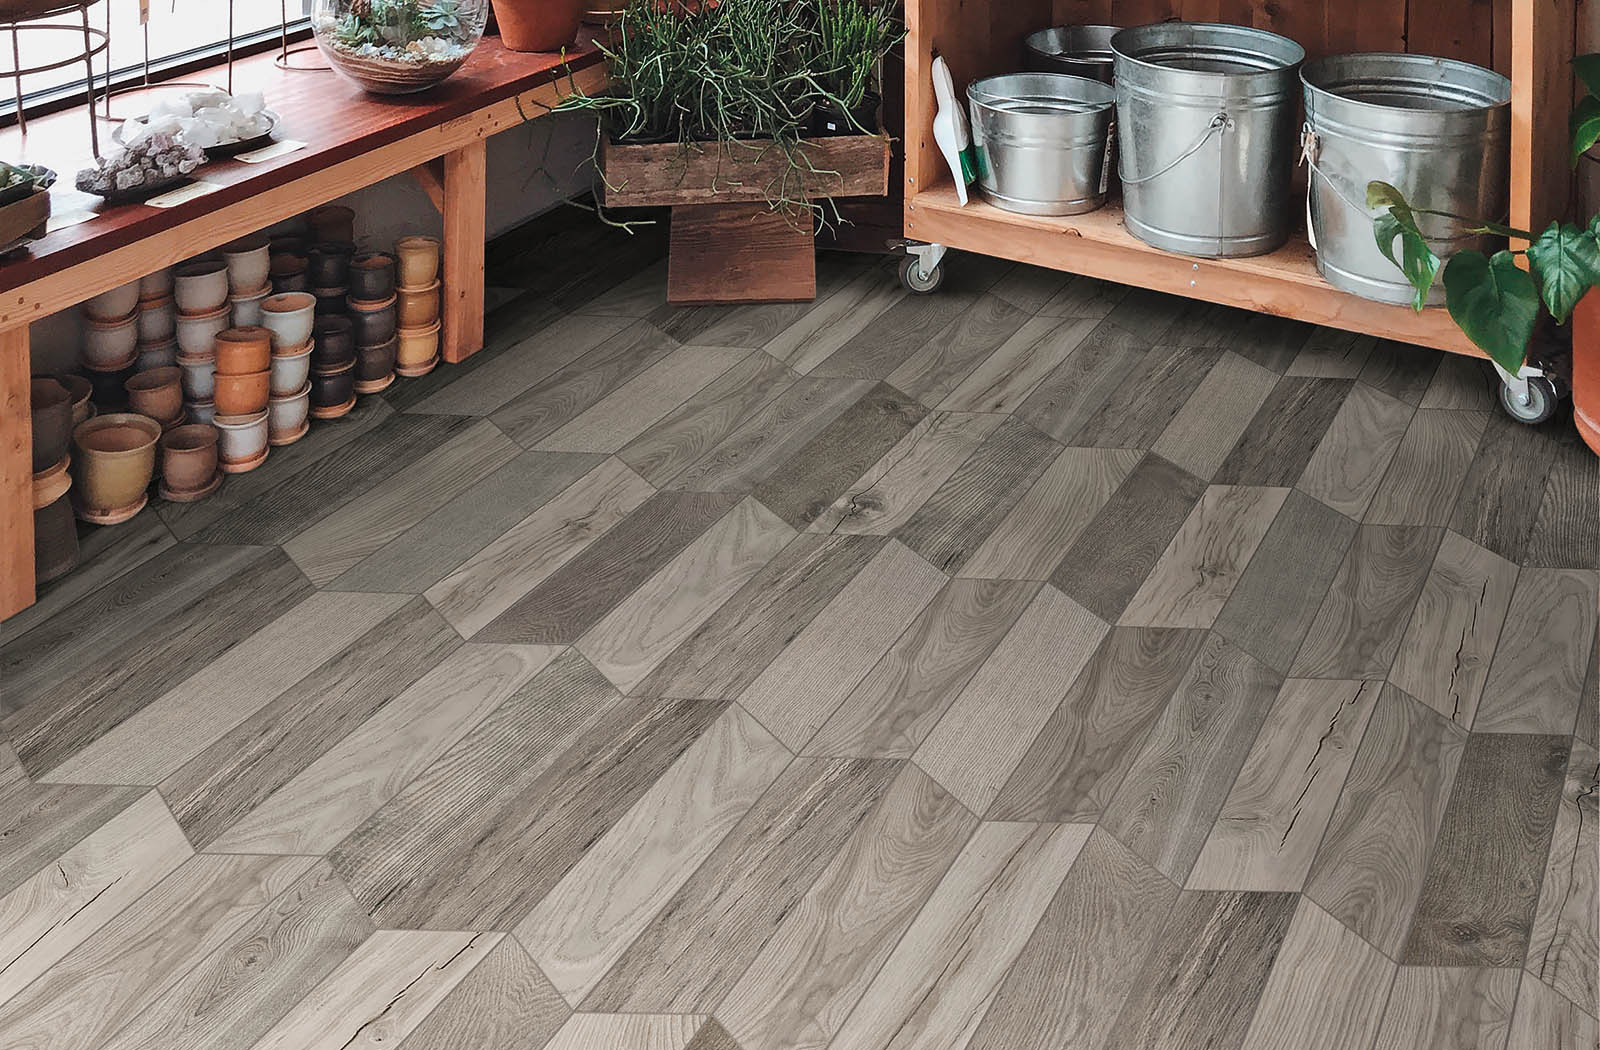 discount hardwood flooring toronto of colour dimension series wall tile olympia tile within marazzi treverksoul 003 copy